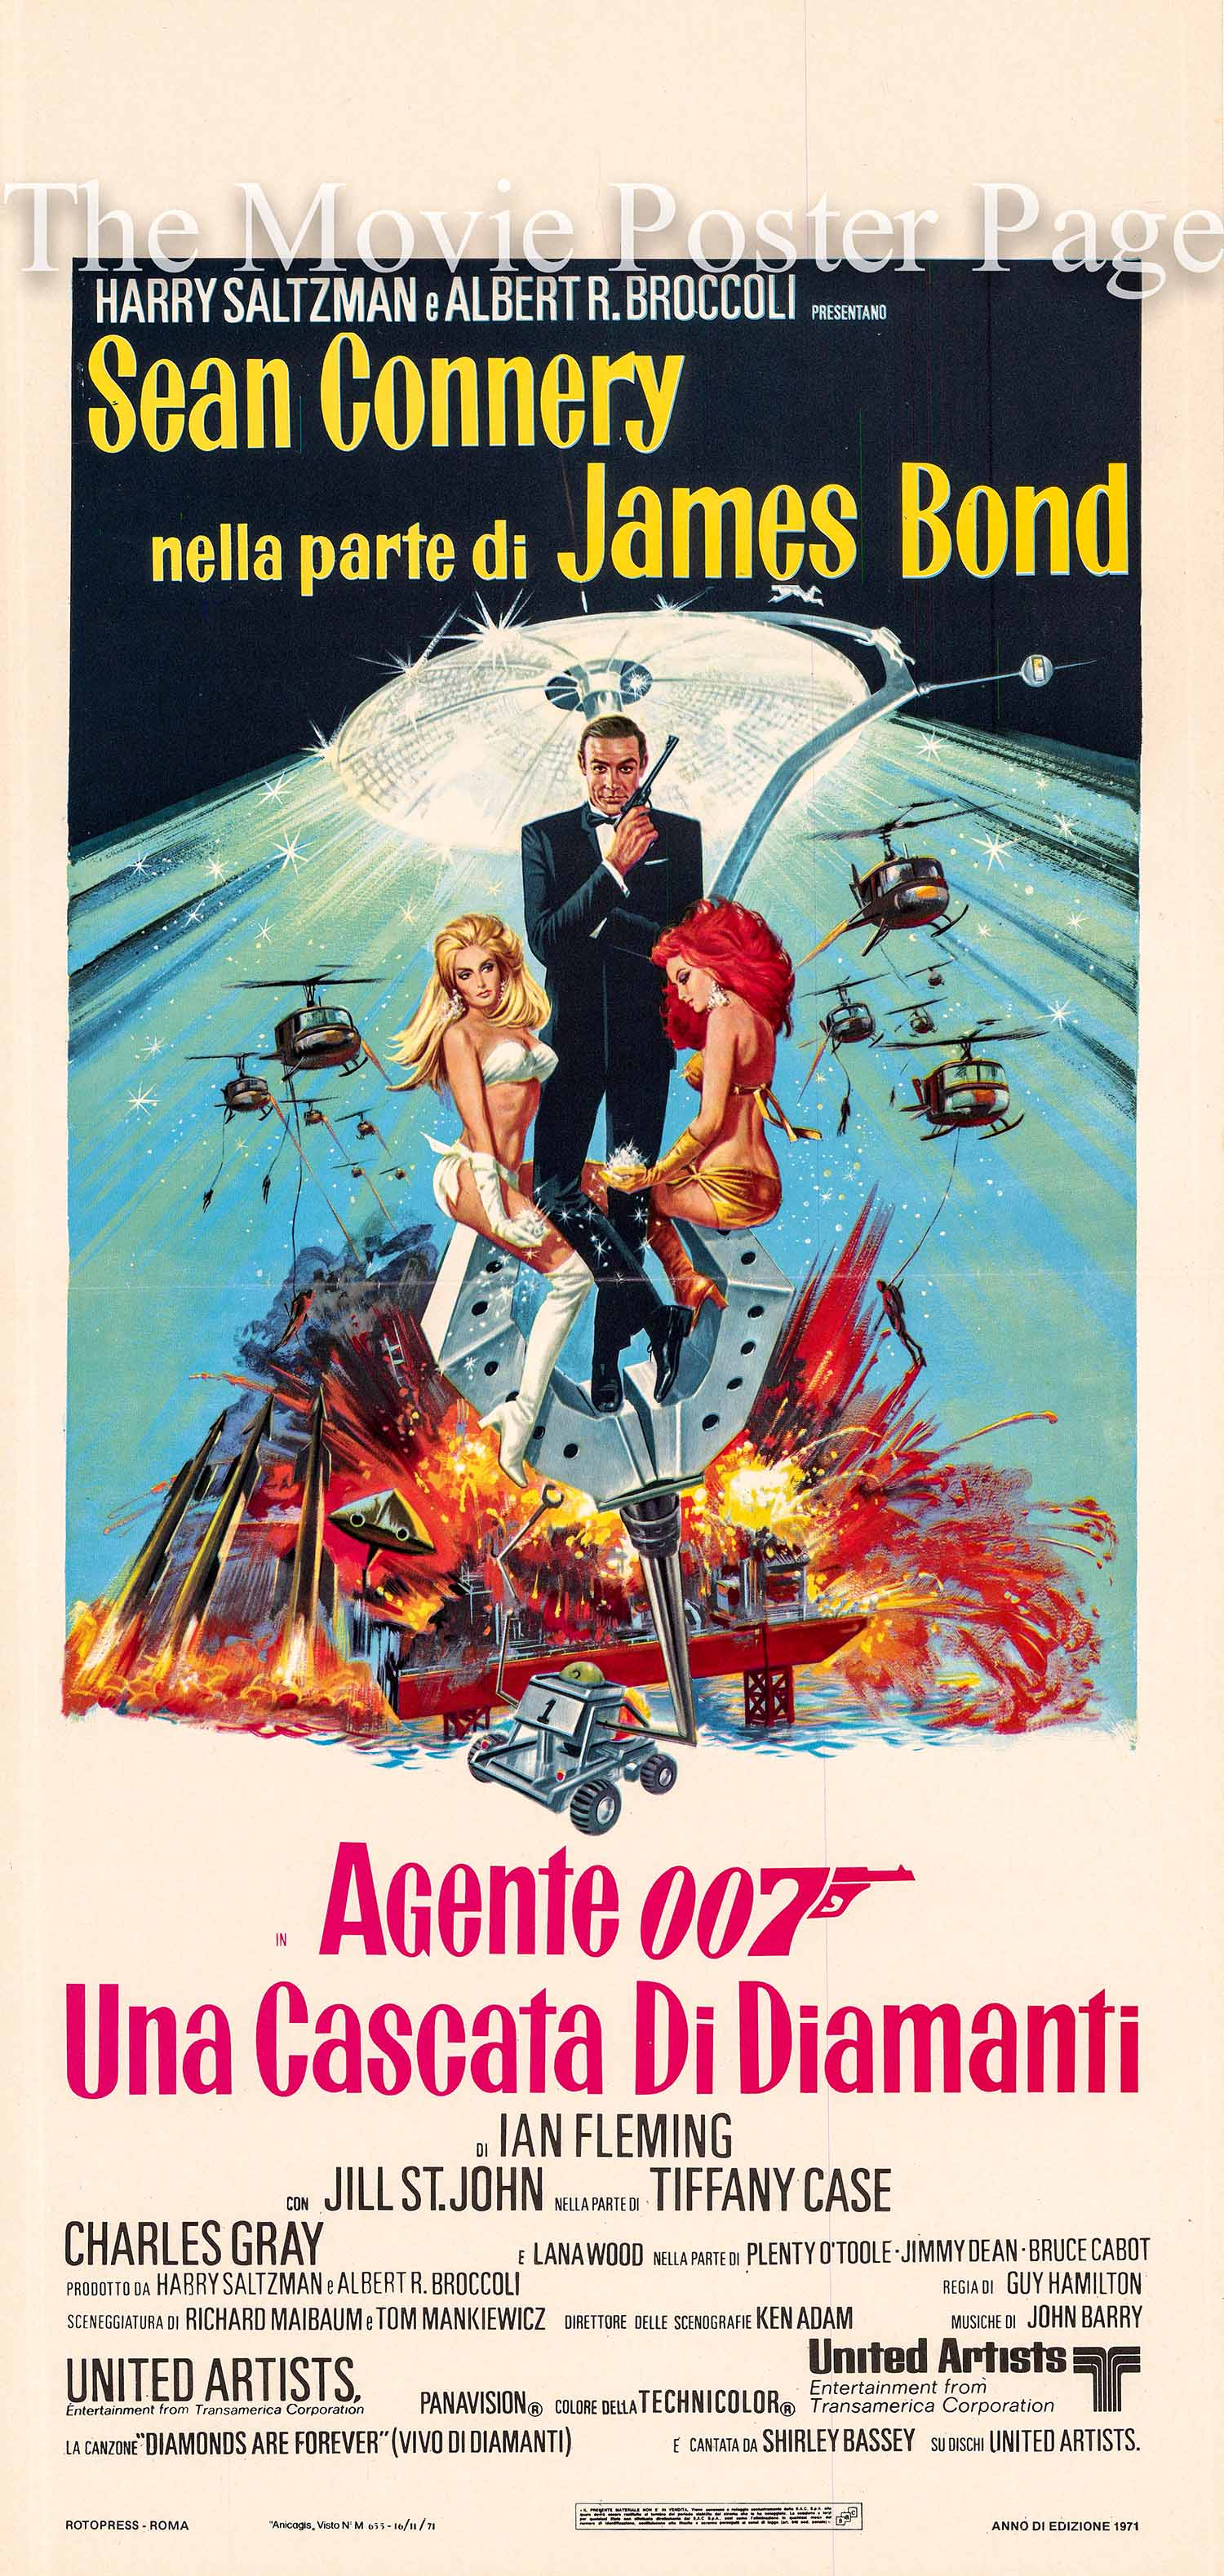 Pictured is an Italian locandina poster made to promote the 1971 Guy Hamilton film Diamonds are Forever starring Sean Connery as James Bond.